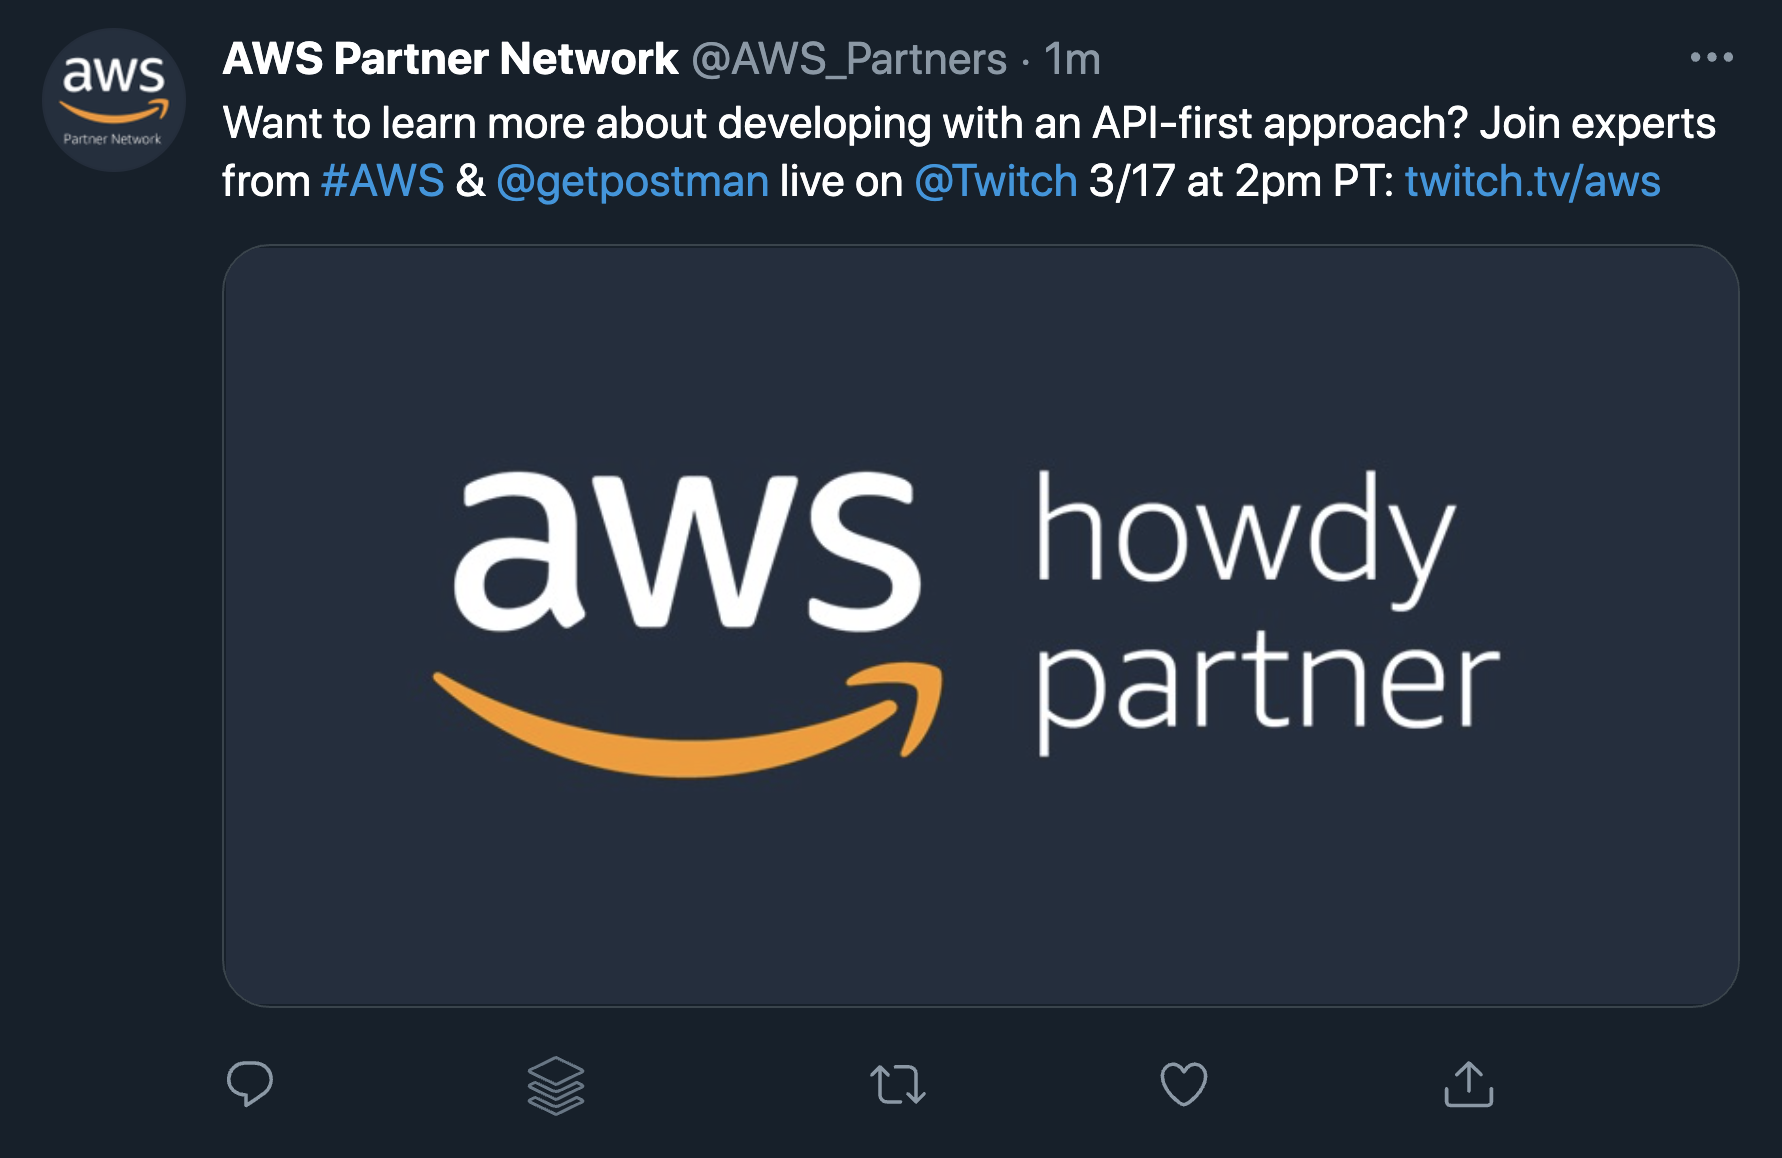 AWS builds developer communities